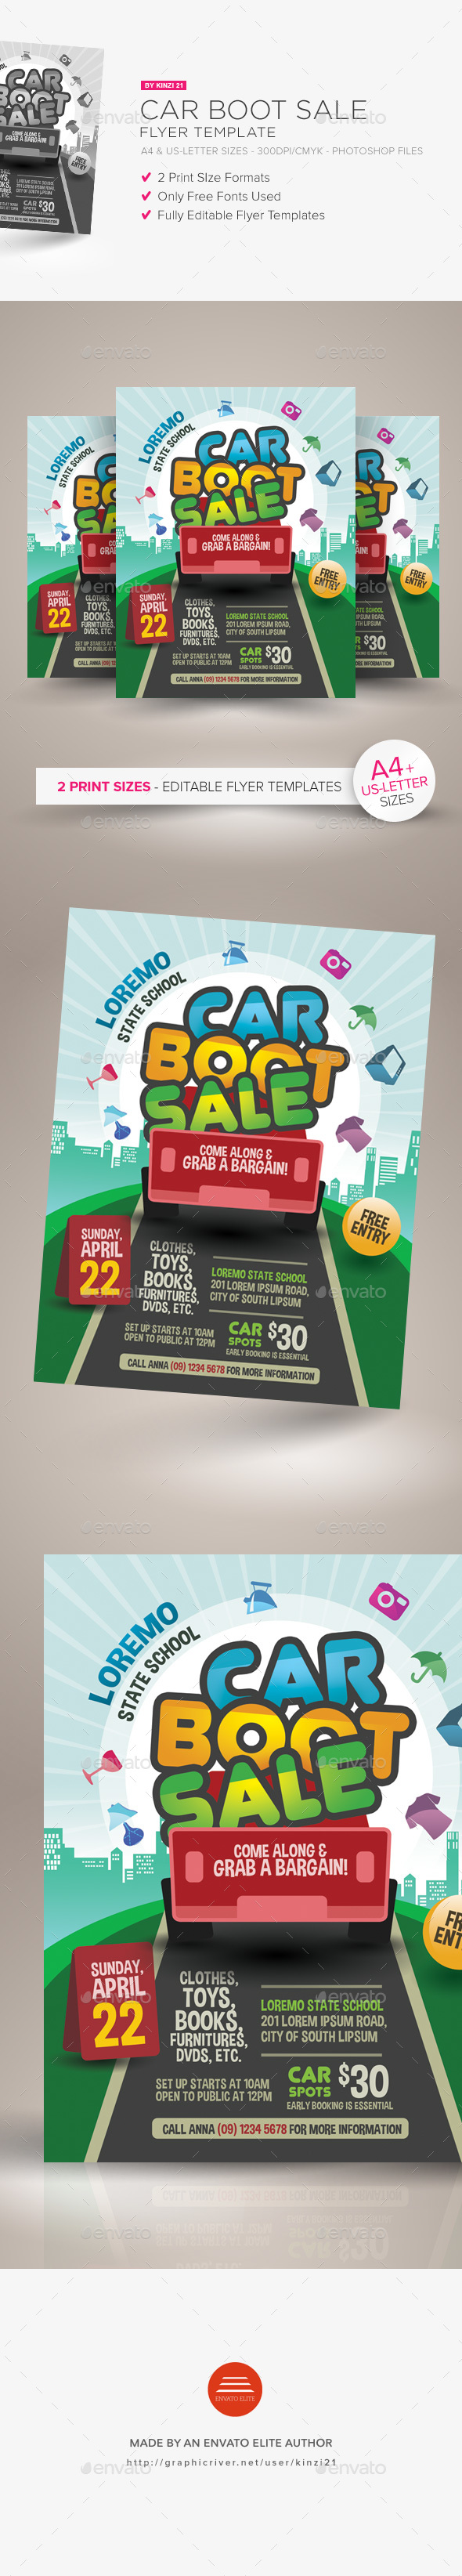 Car Boot Sale Flyer Template - Miscellaneous Events